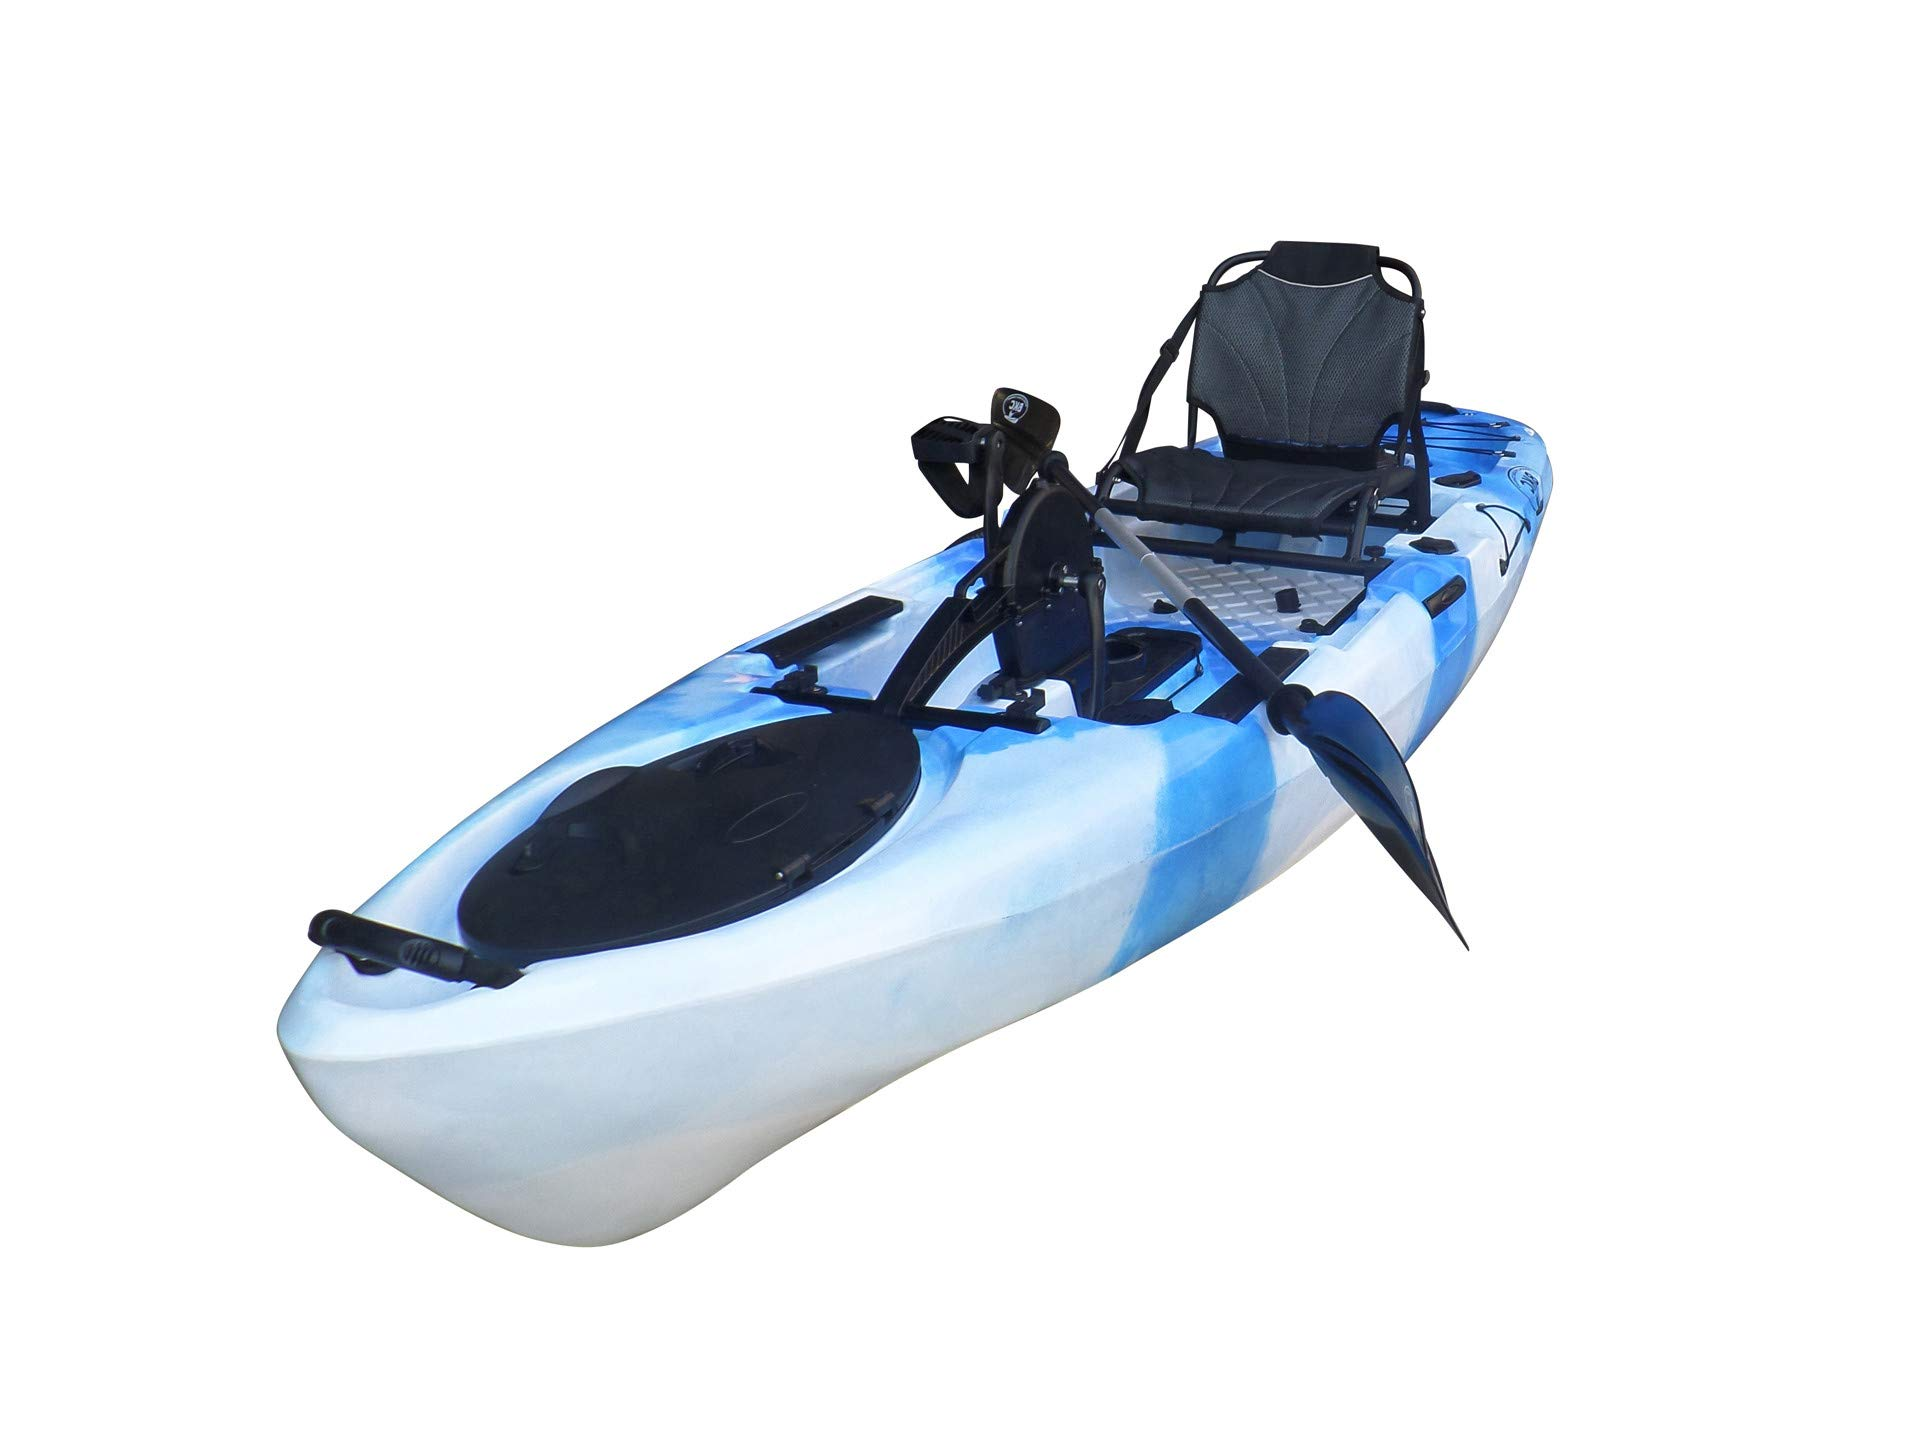 BKC UH-PK11 Pedal Drive Solo Rover 10-Foot 6-Inch Solo Kayak Propeller-Driven Sit On Top Single Fishing Kayak with Pedal Drive, Rudder System, Paddle, and Seat Included (Blue Camo) by Brooklyn Kayak Company